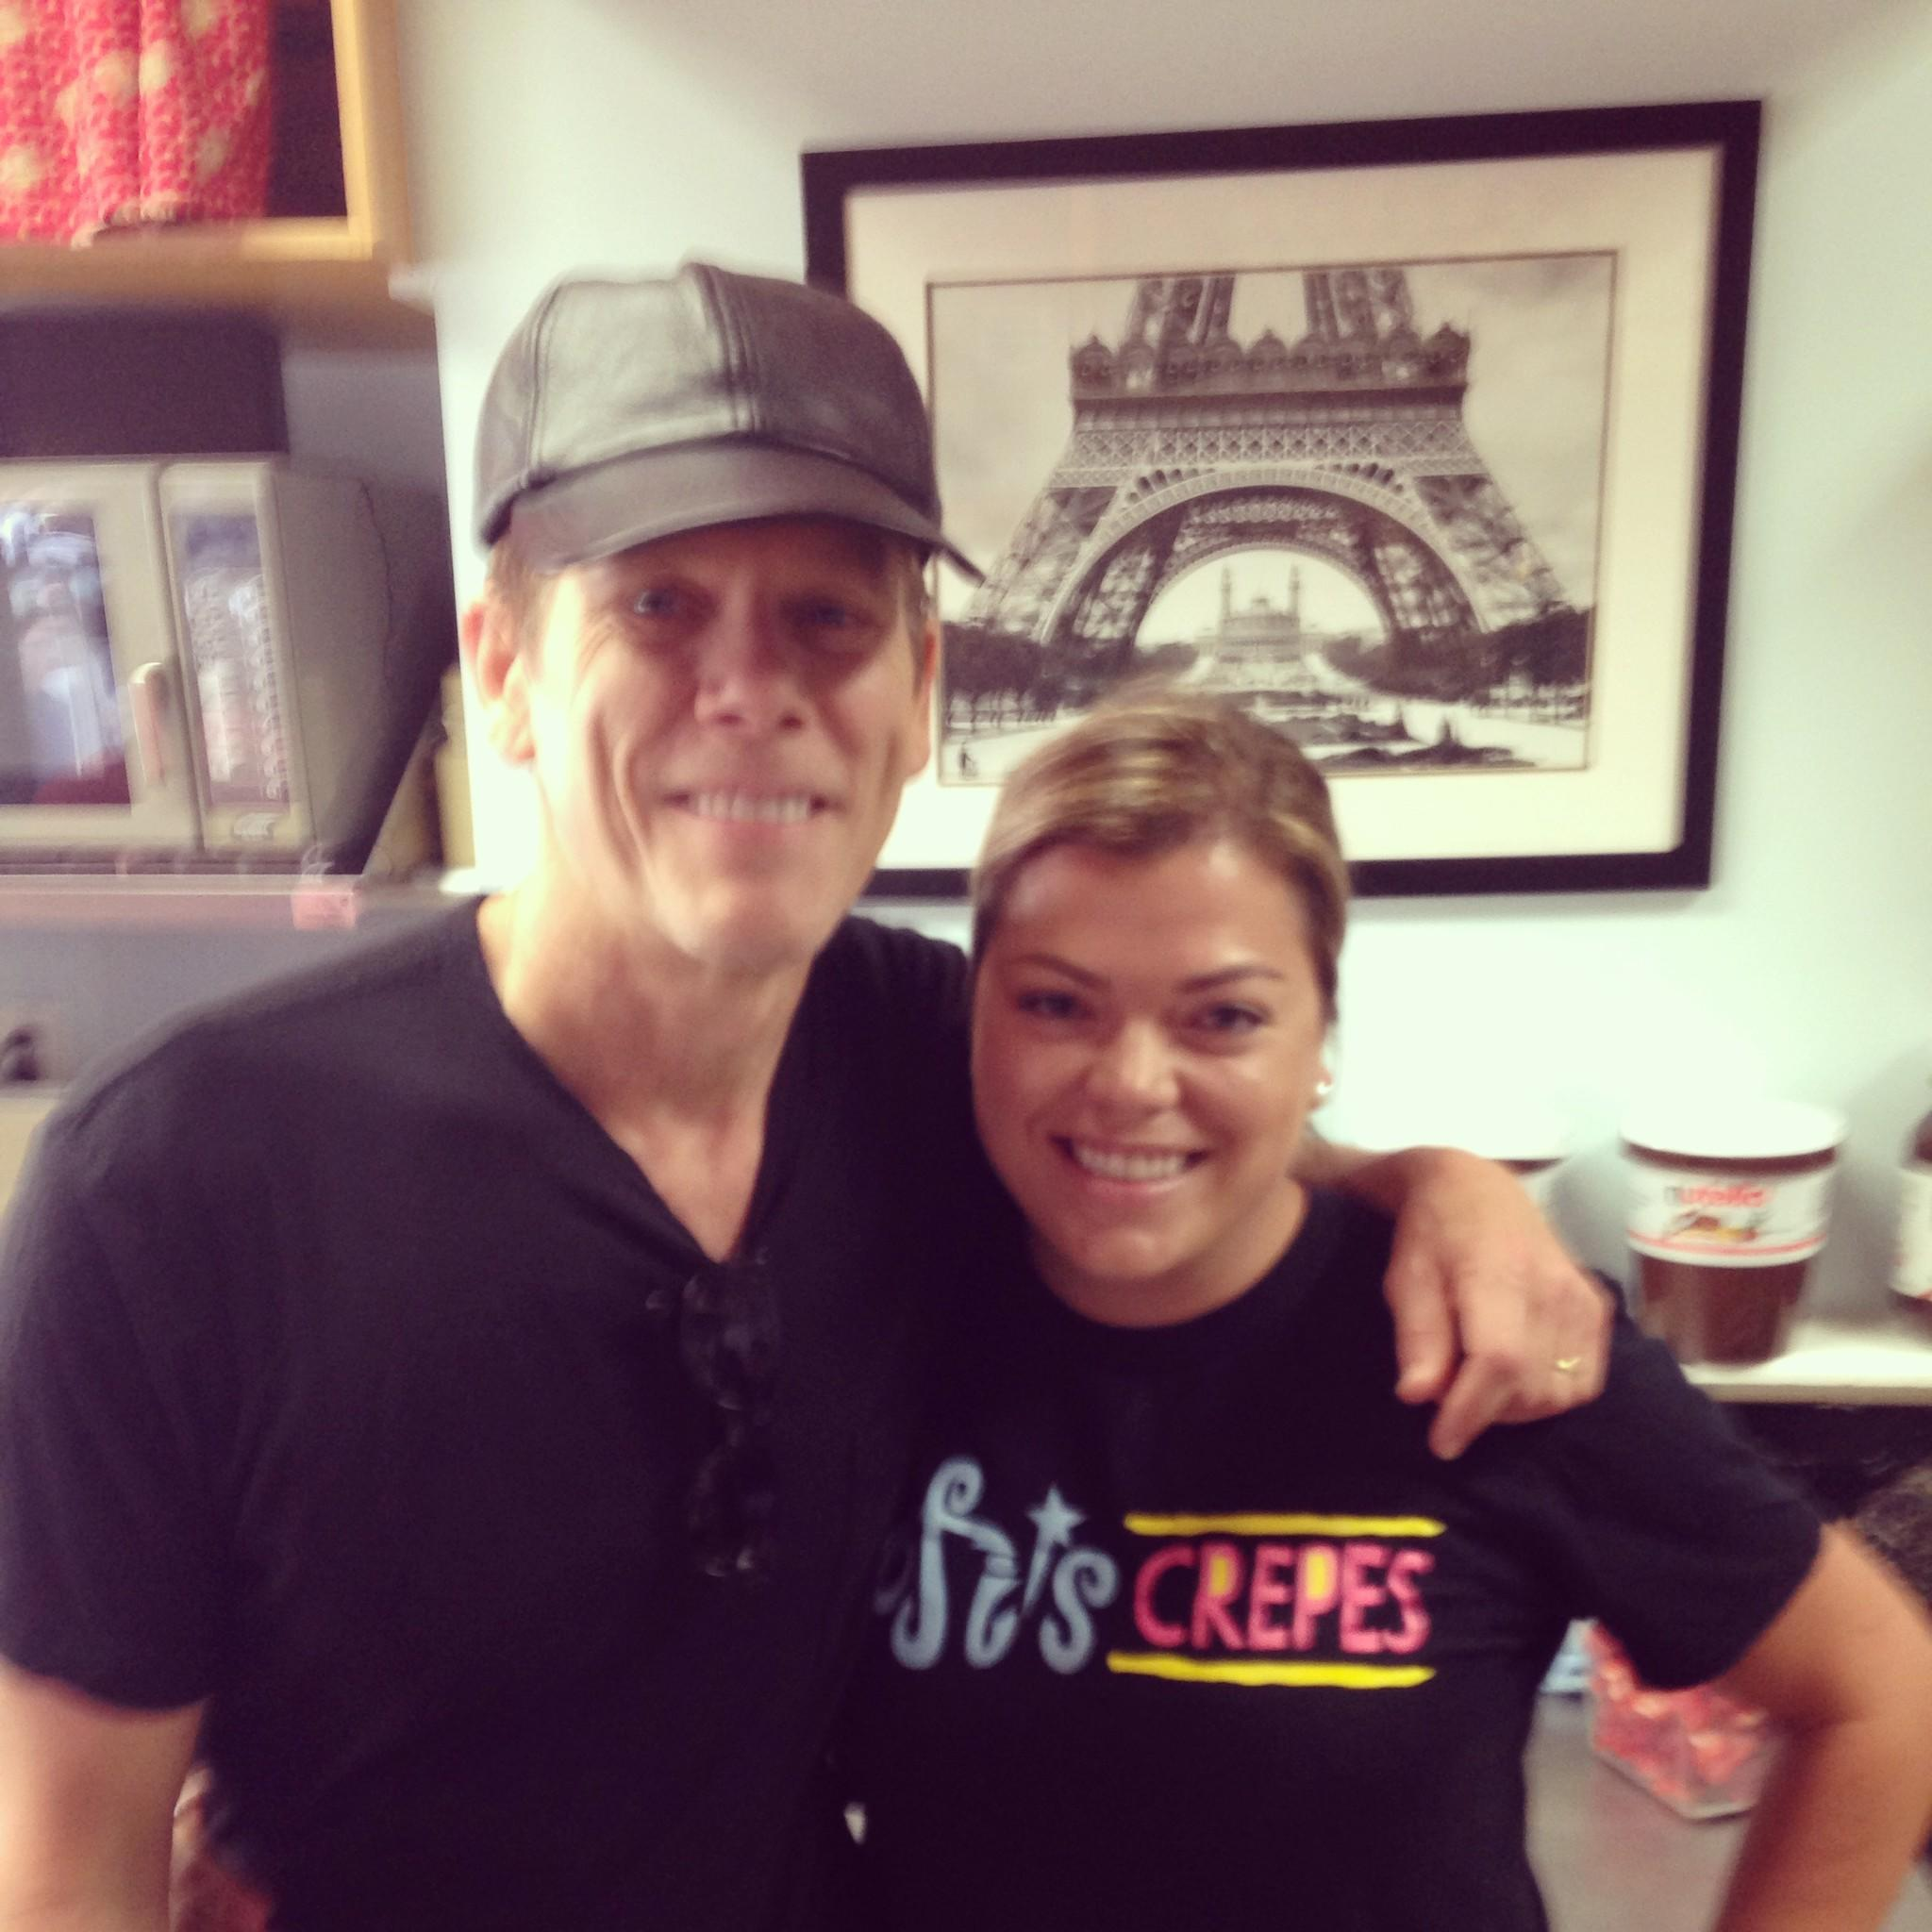 Stephanie Barba, of Sofi's Crepes, now has one degree of separation from Kevin Bacon.